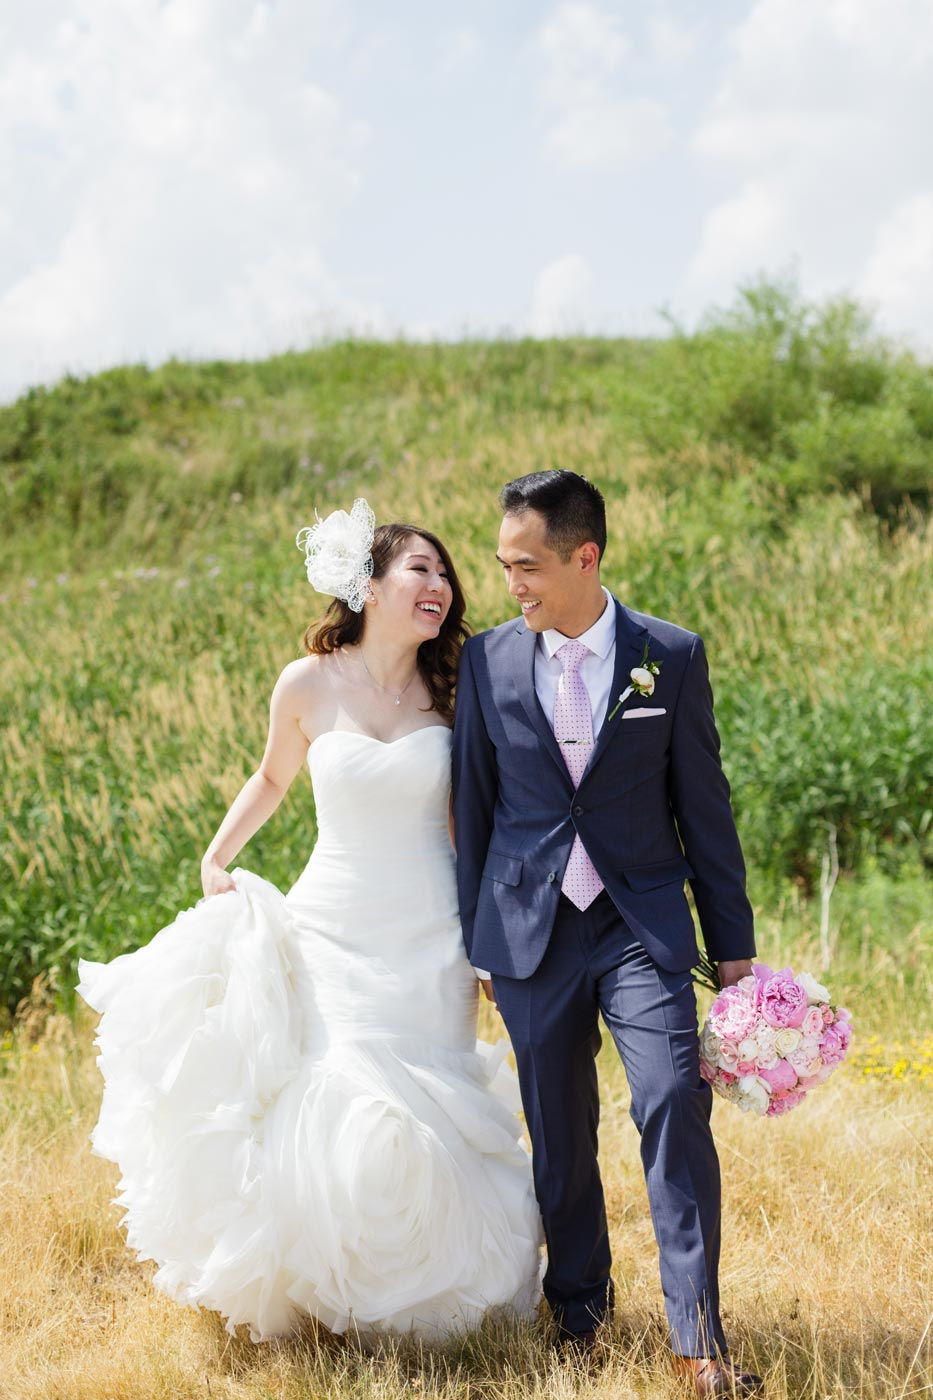 jessicahoang-savi-toronto-wedding-eagles-nest-26